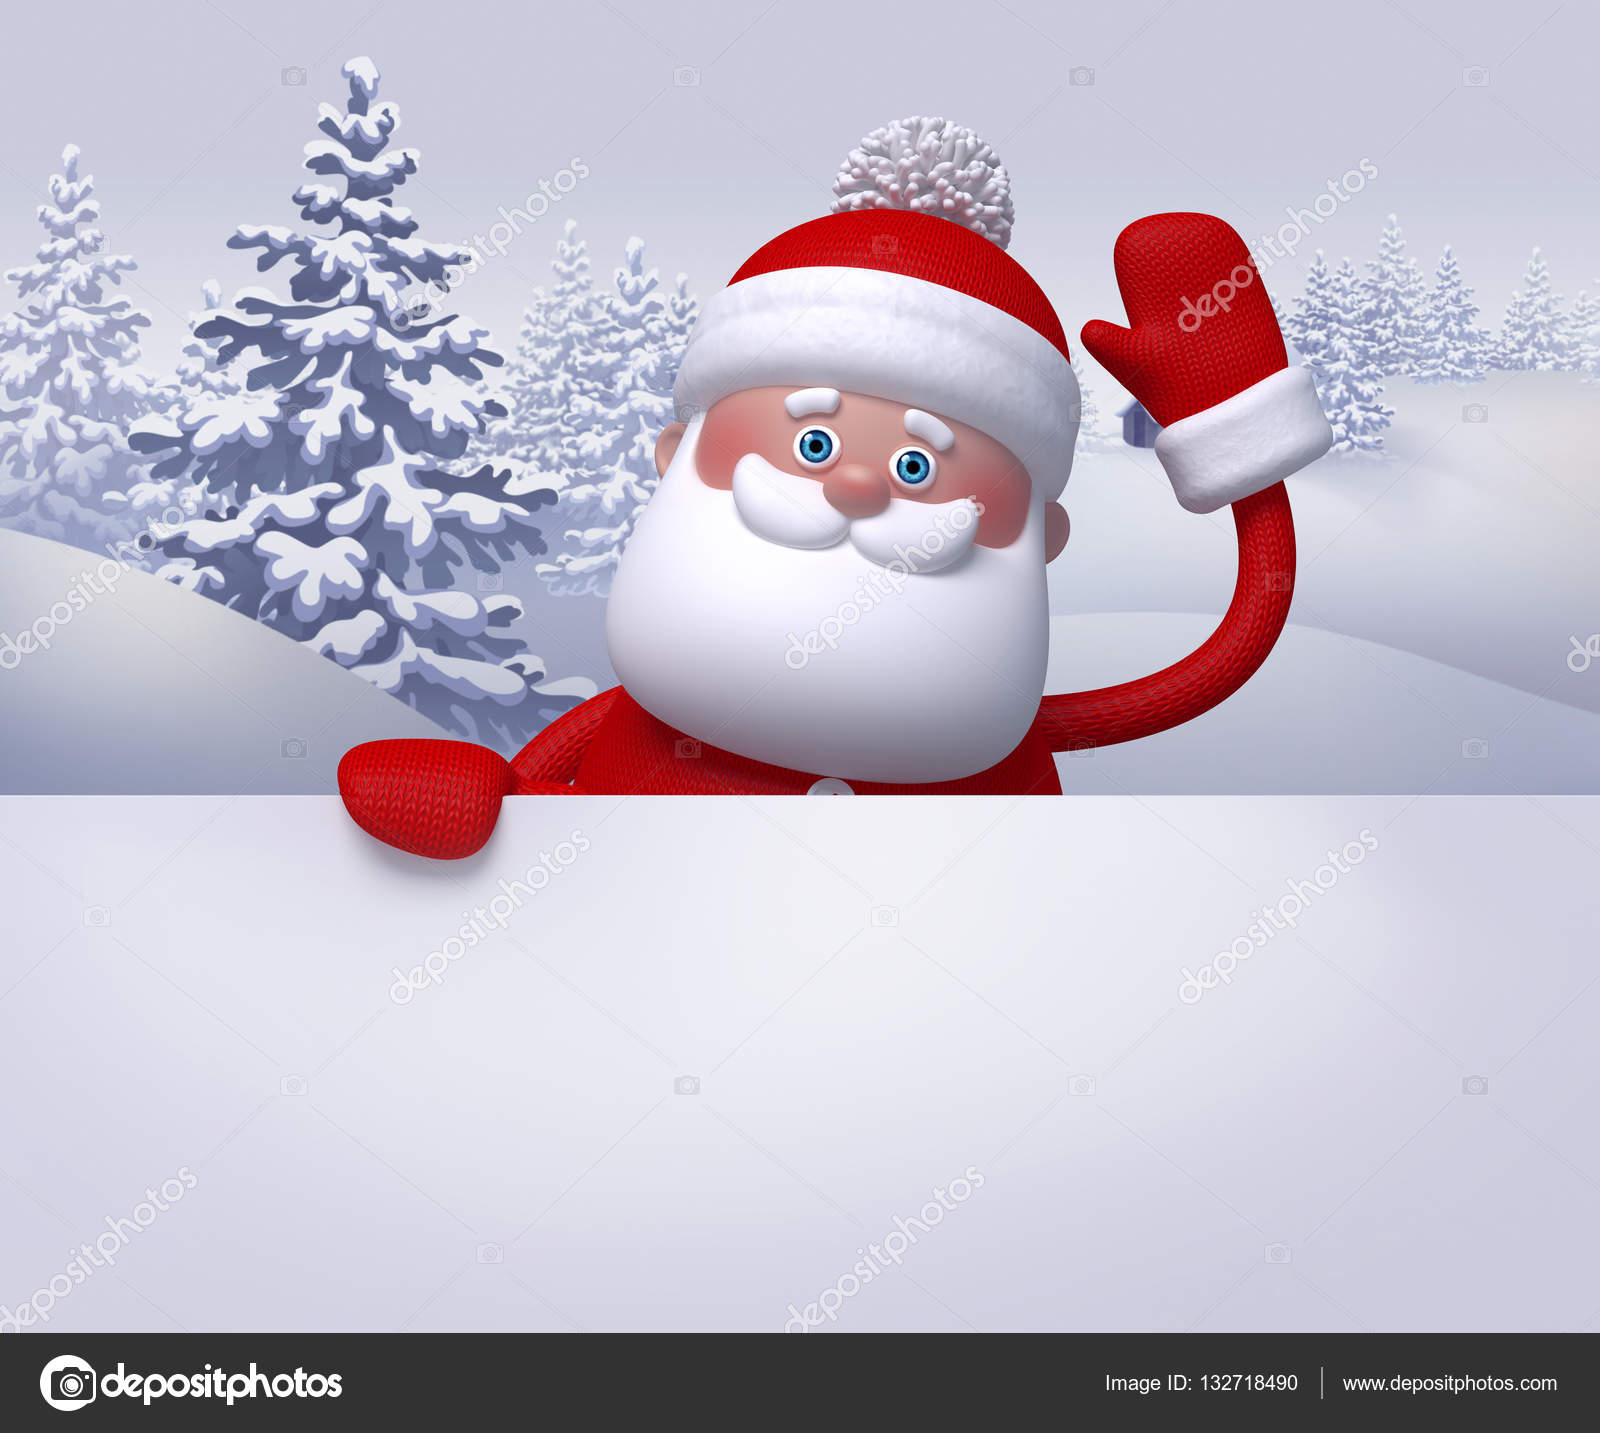 3d render digital illustration santa claus waving hand winter nature snowy forest landscape christmas background greeting card template blank banner